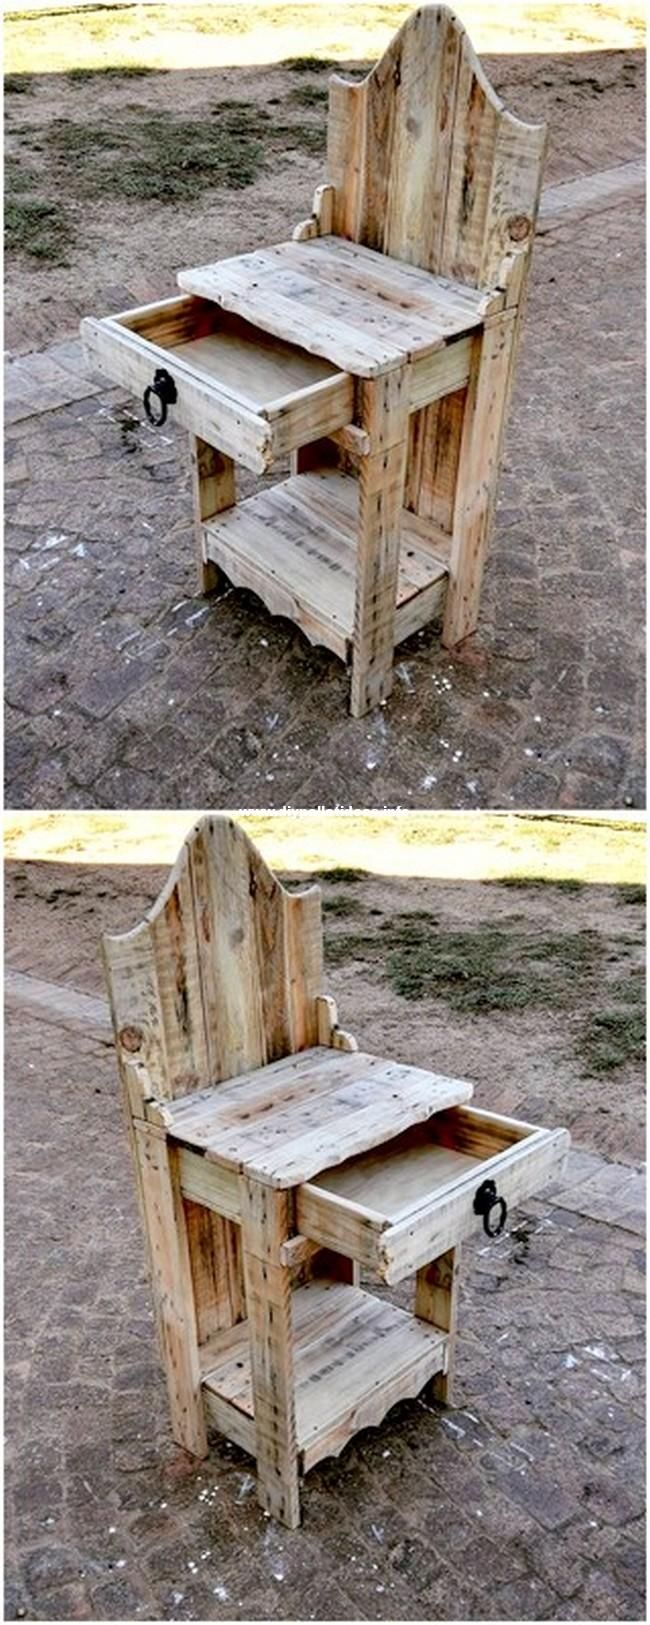 50 Amazing Creations of Pallets Wood At Home | Wood ...